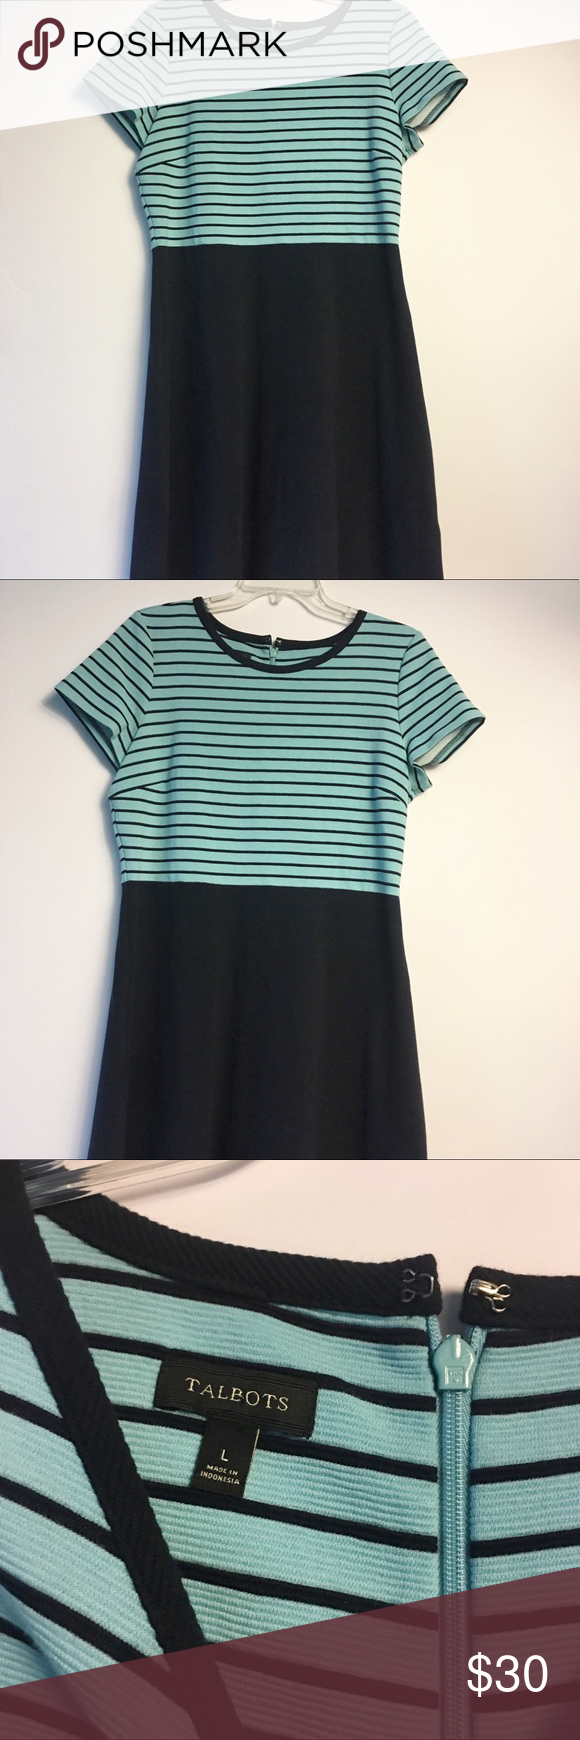 """Talbots Fit n Flare Navy Blue Striped Dress Large Talbots Fit n Flare Dress Short sleeves, scoop neck and zipper up back Navy blue bottom and teal and navy stripes on top Size Large Pit to pit-19"""" Length-39"""" Waist-34"""" Gently worn Hinventory Talbots Dresses Midi #navyblueshortdress"""